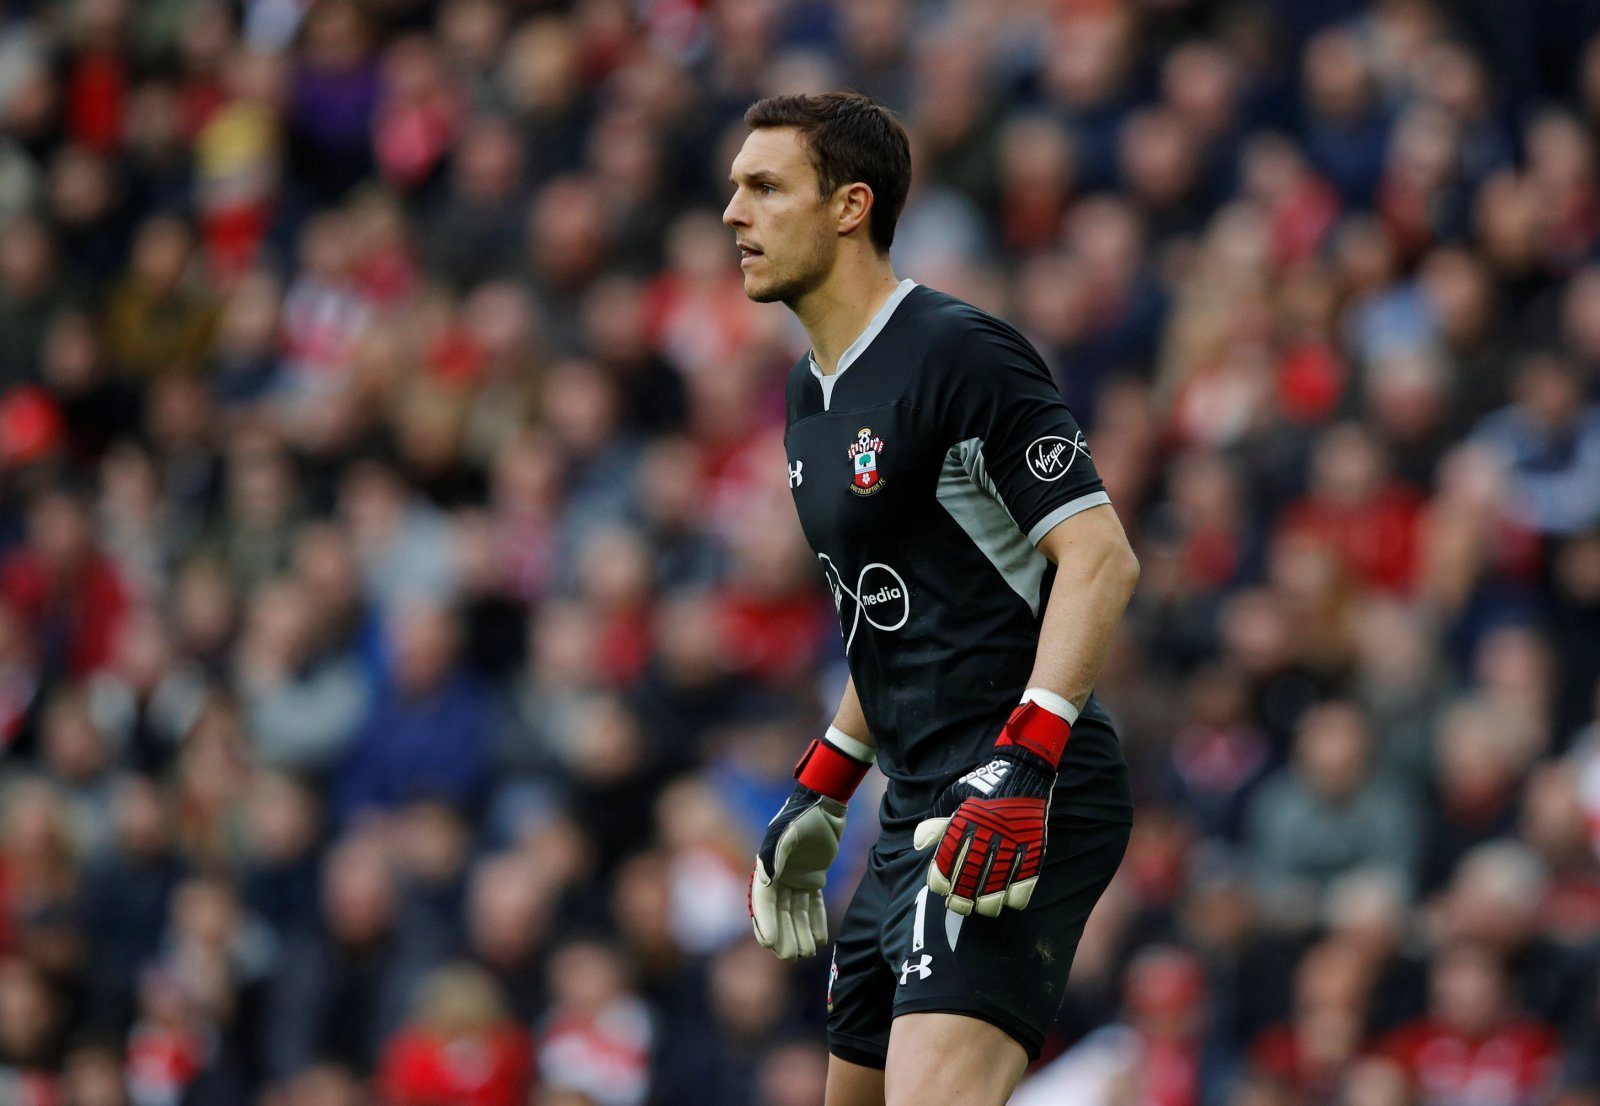 Southampton: Fans reveal who they want to see in goal against Everton